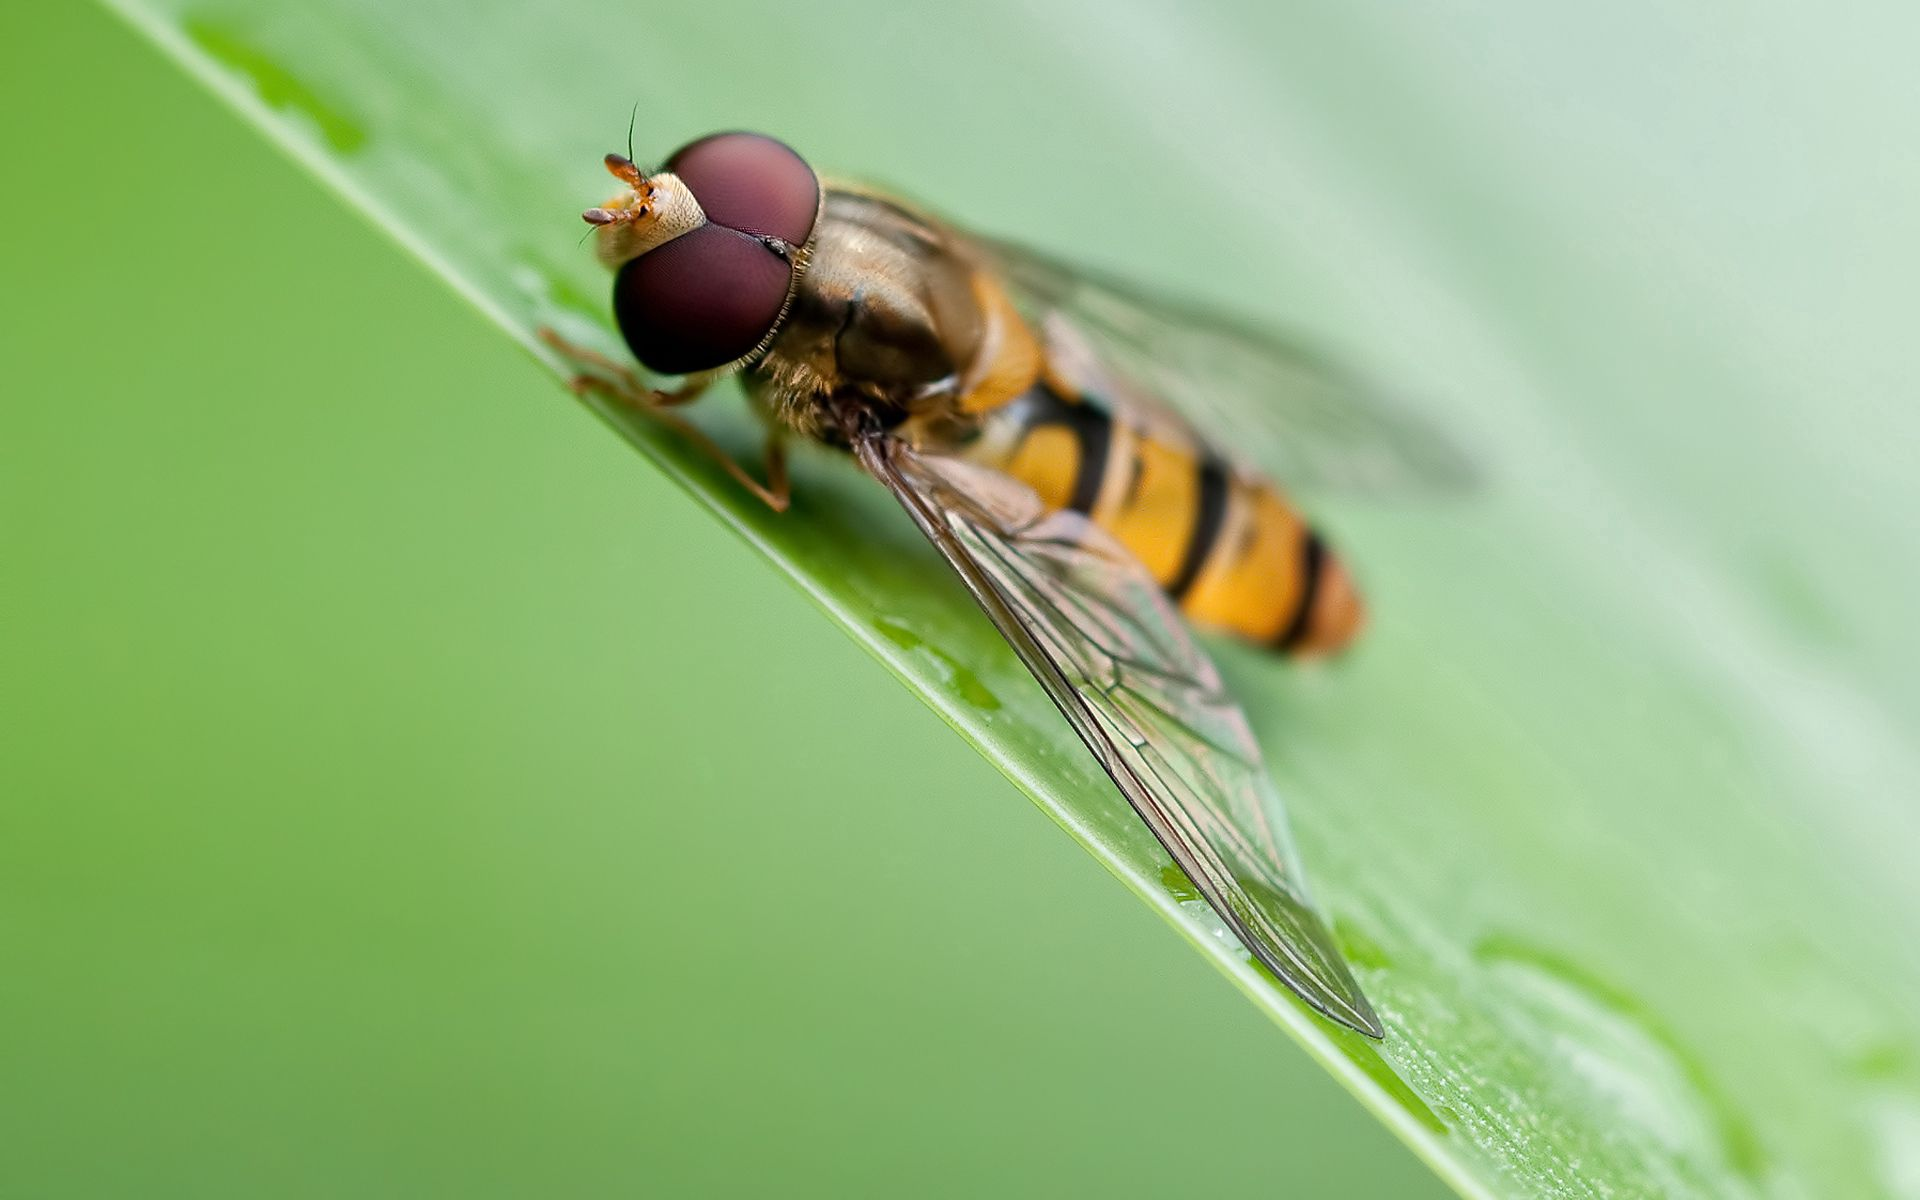 85505 download wallpaper Macro, Bee, Grass, Leaves, Surface screensavers and pictures for free